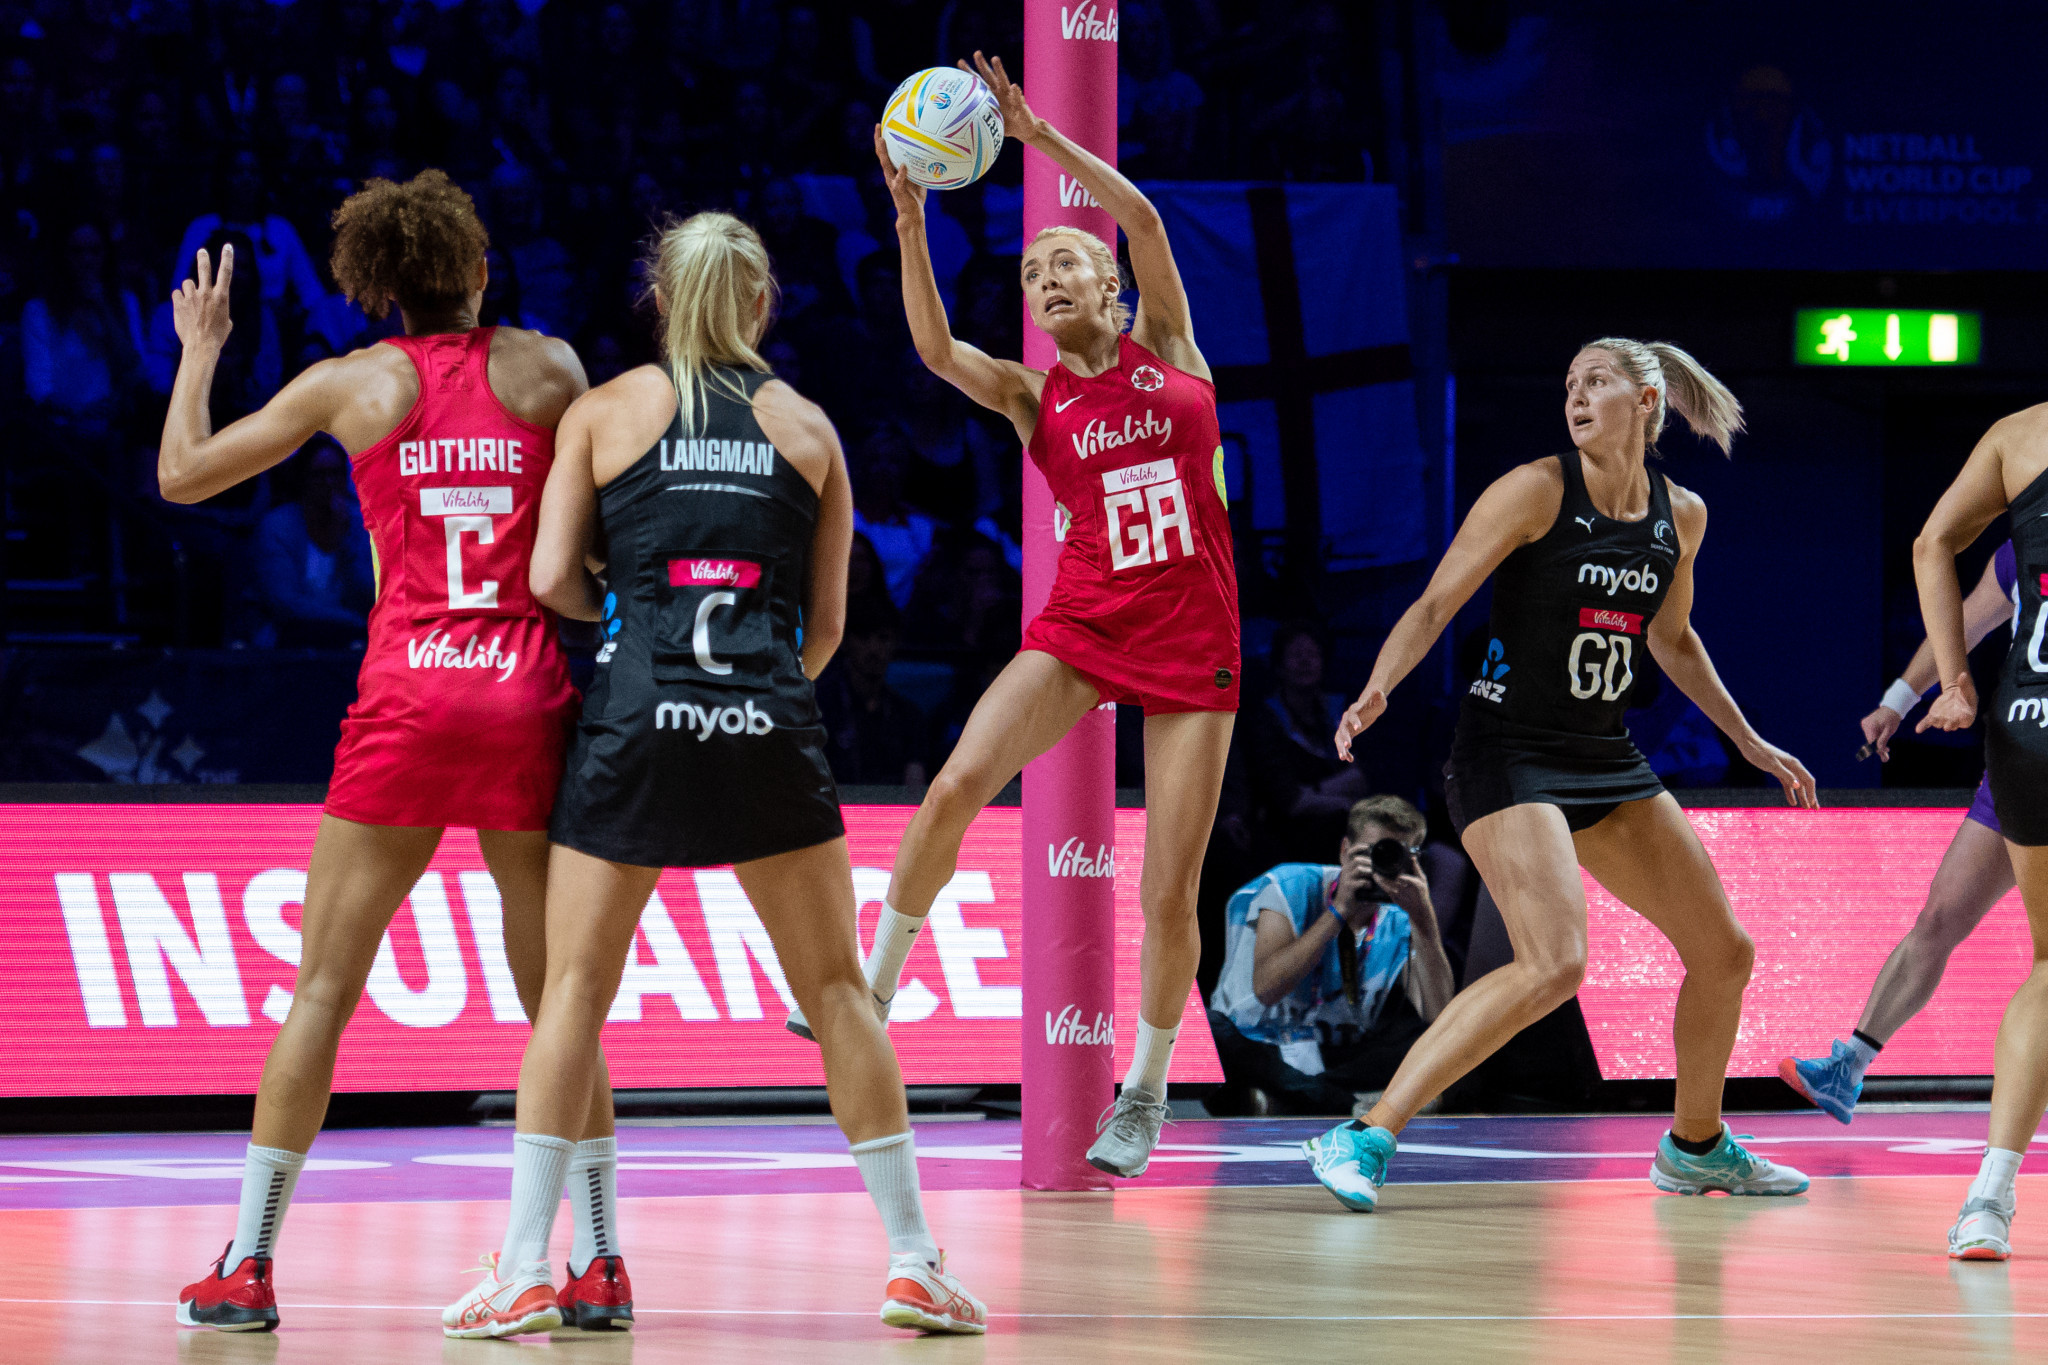 England to travel to New Zealand for three-match netball series